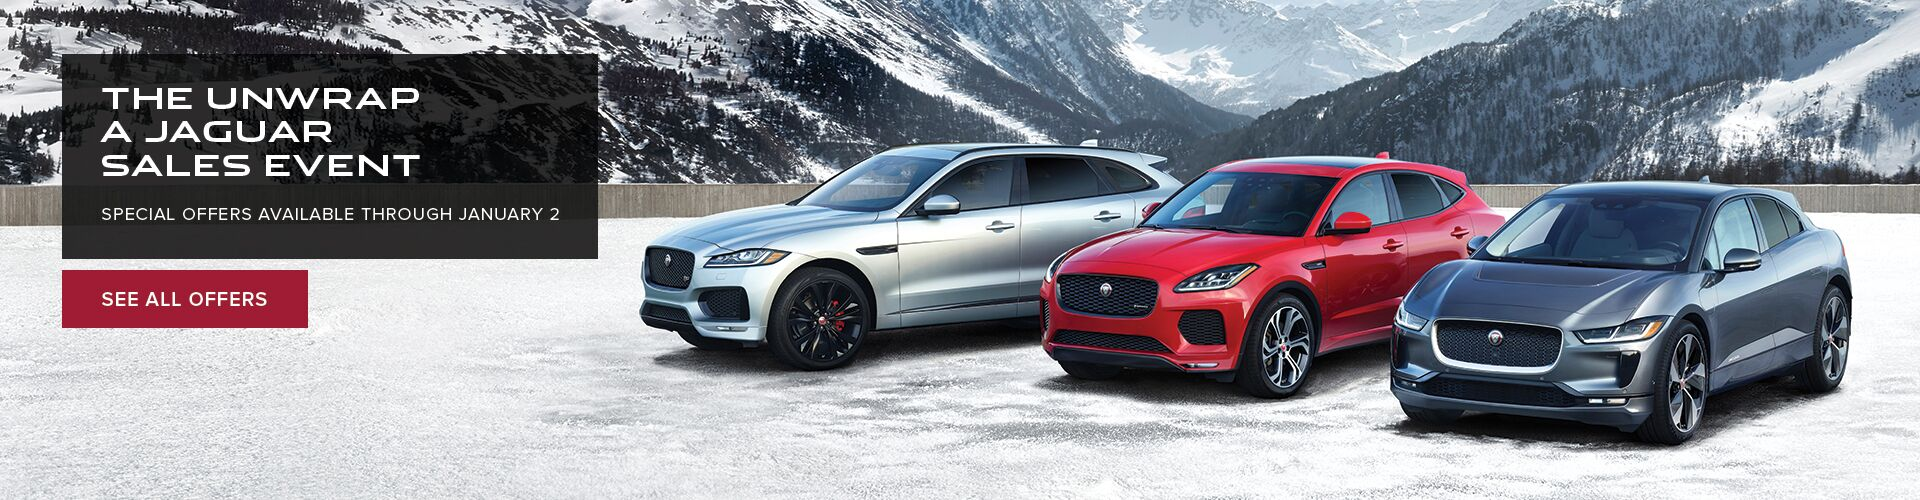 National - Jaguar Holiday Sales Event